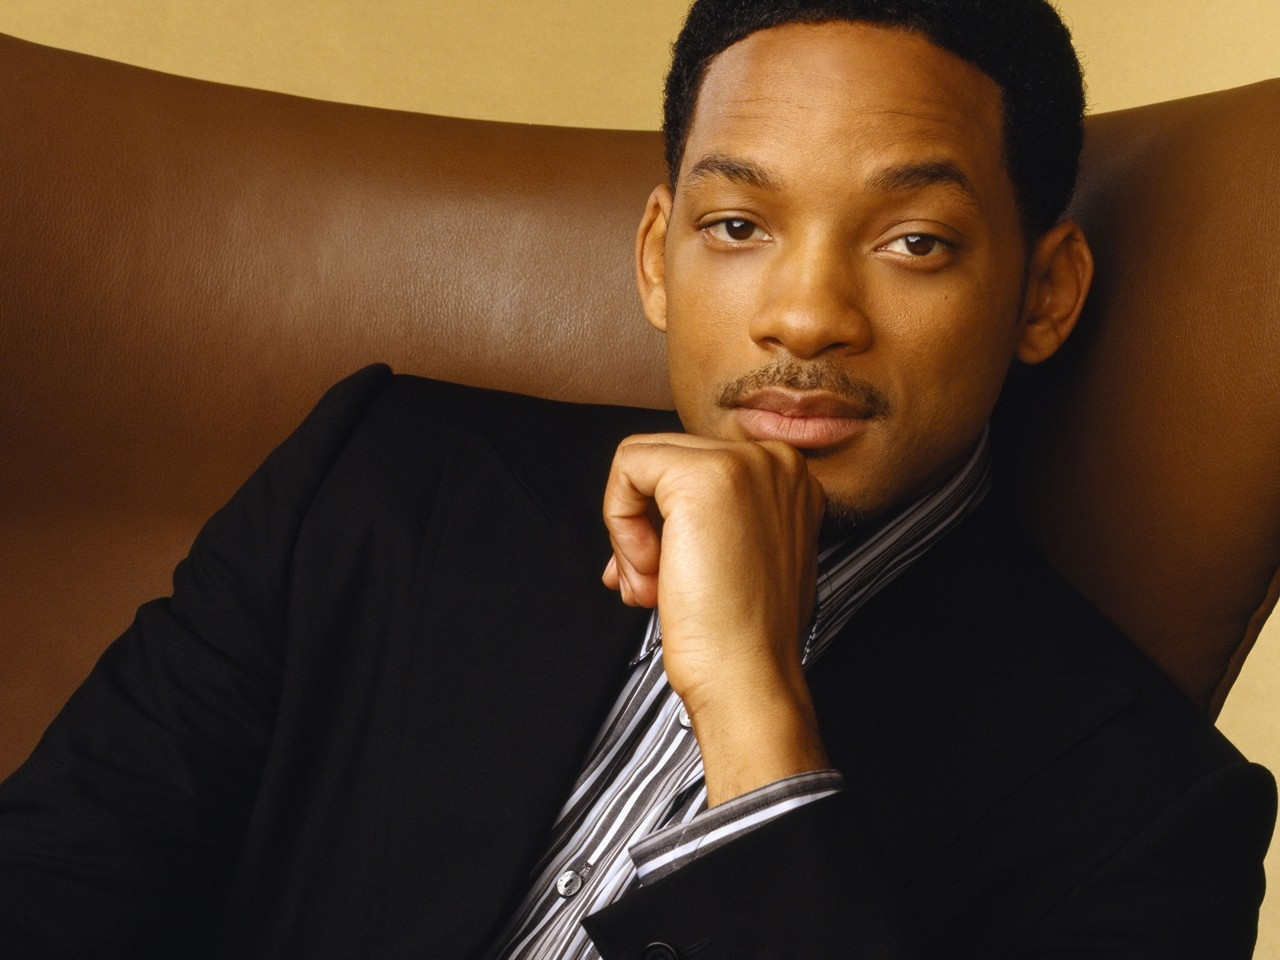 Overzicht van de rollen en films van Will Smith